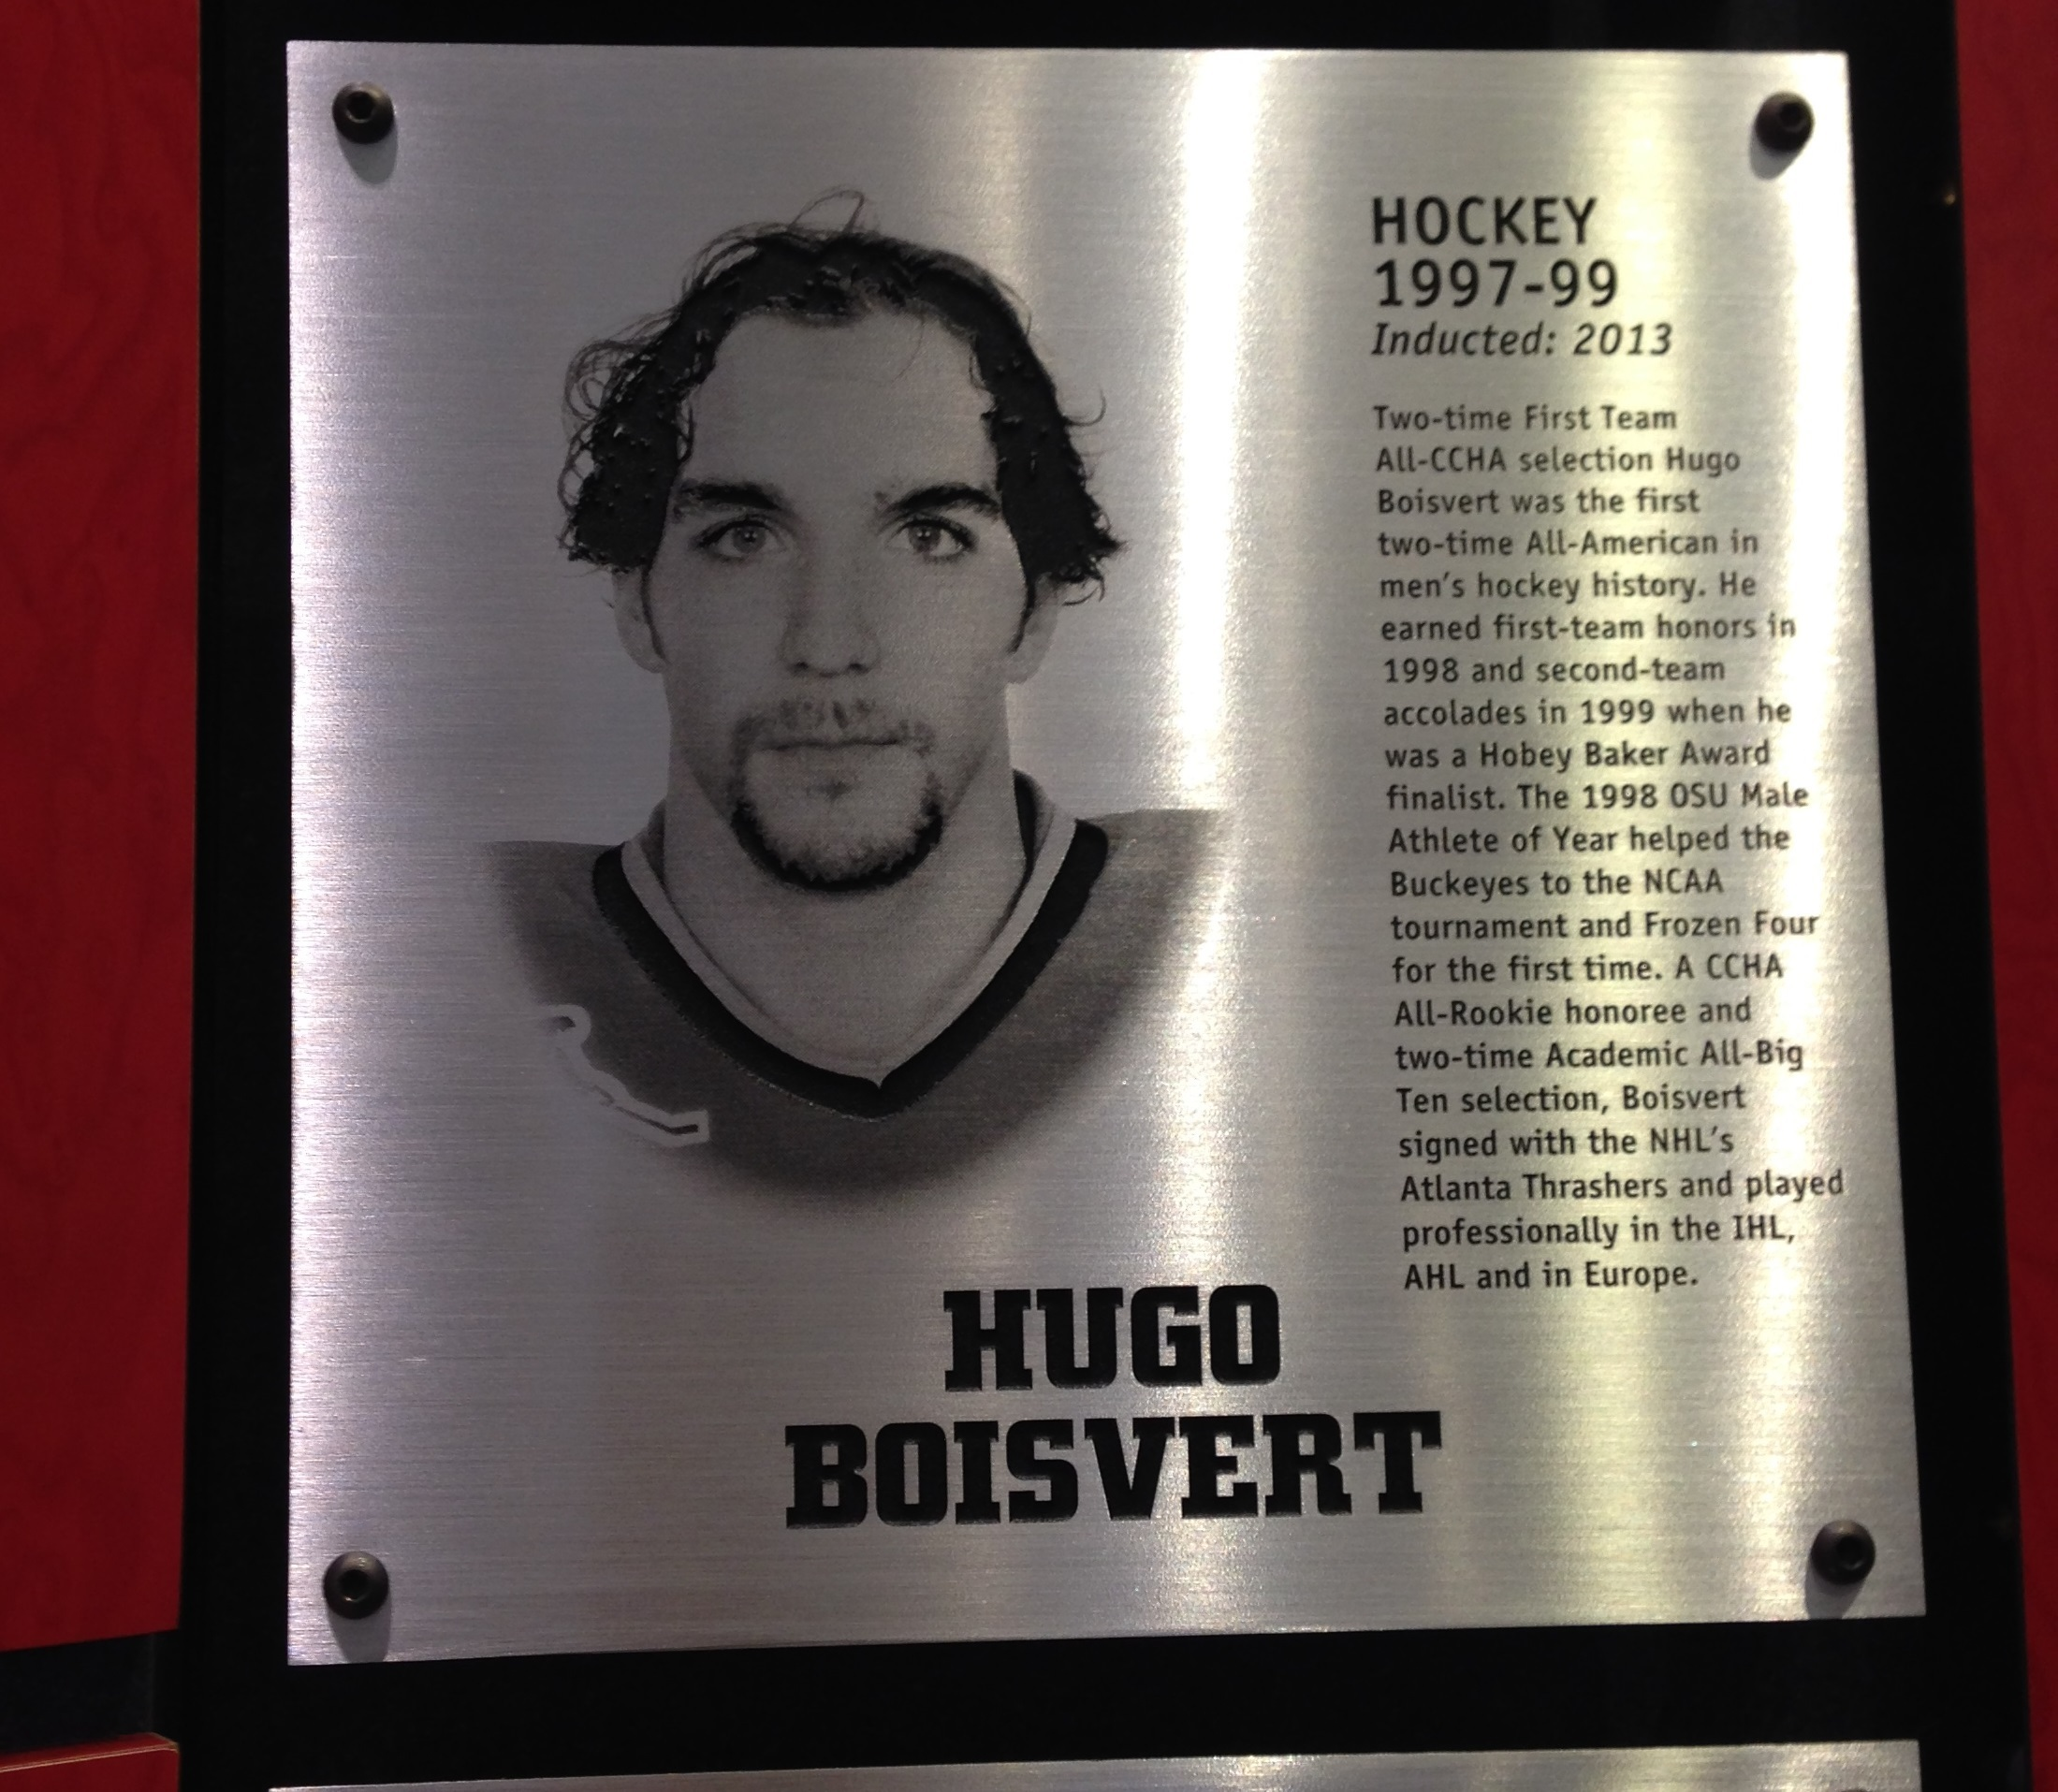 Hugo Boisvert, 2013 Hall of Fame Inductee